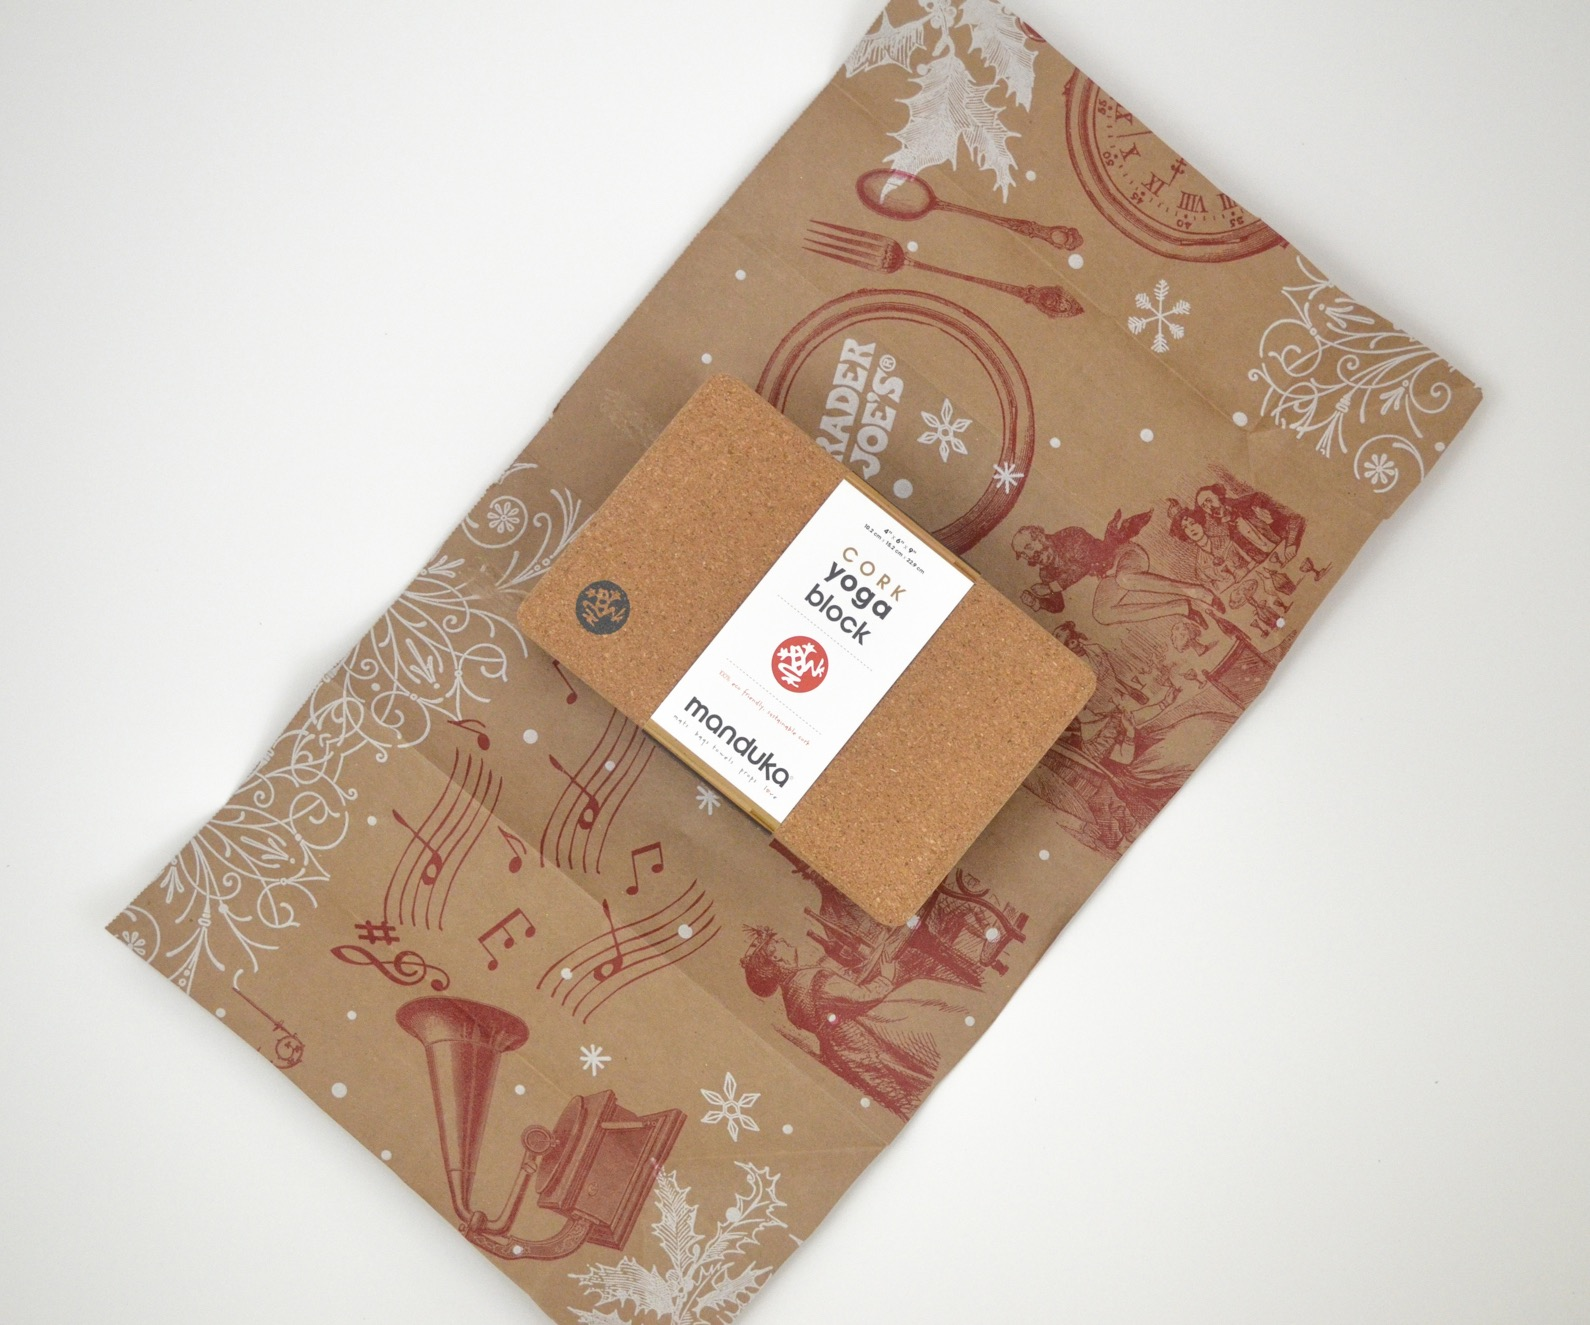 YW_Sustainable Gift Wrap_Blog_5 copy